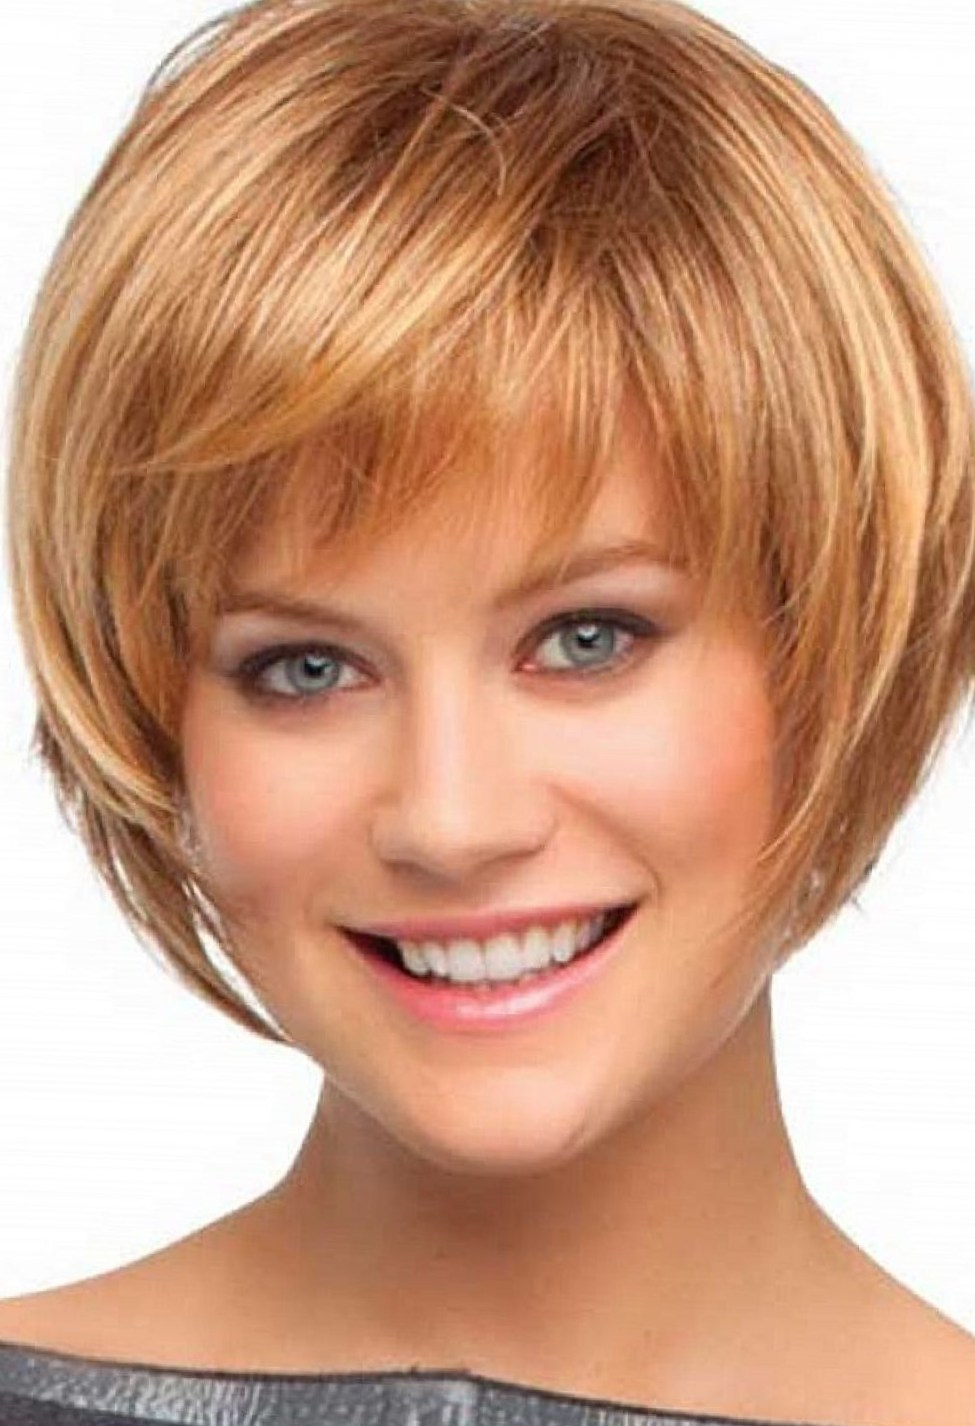 Hairstyle Haircut : ... Bob Hairstyles with Bangs: 4 Perfect Ideas for You Talk Hairstyles